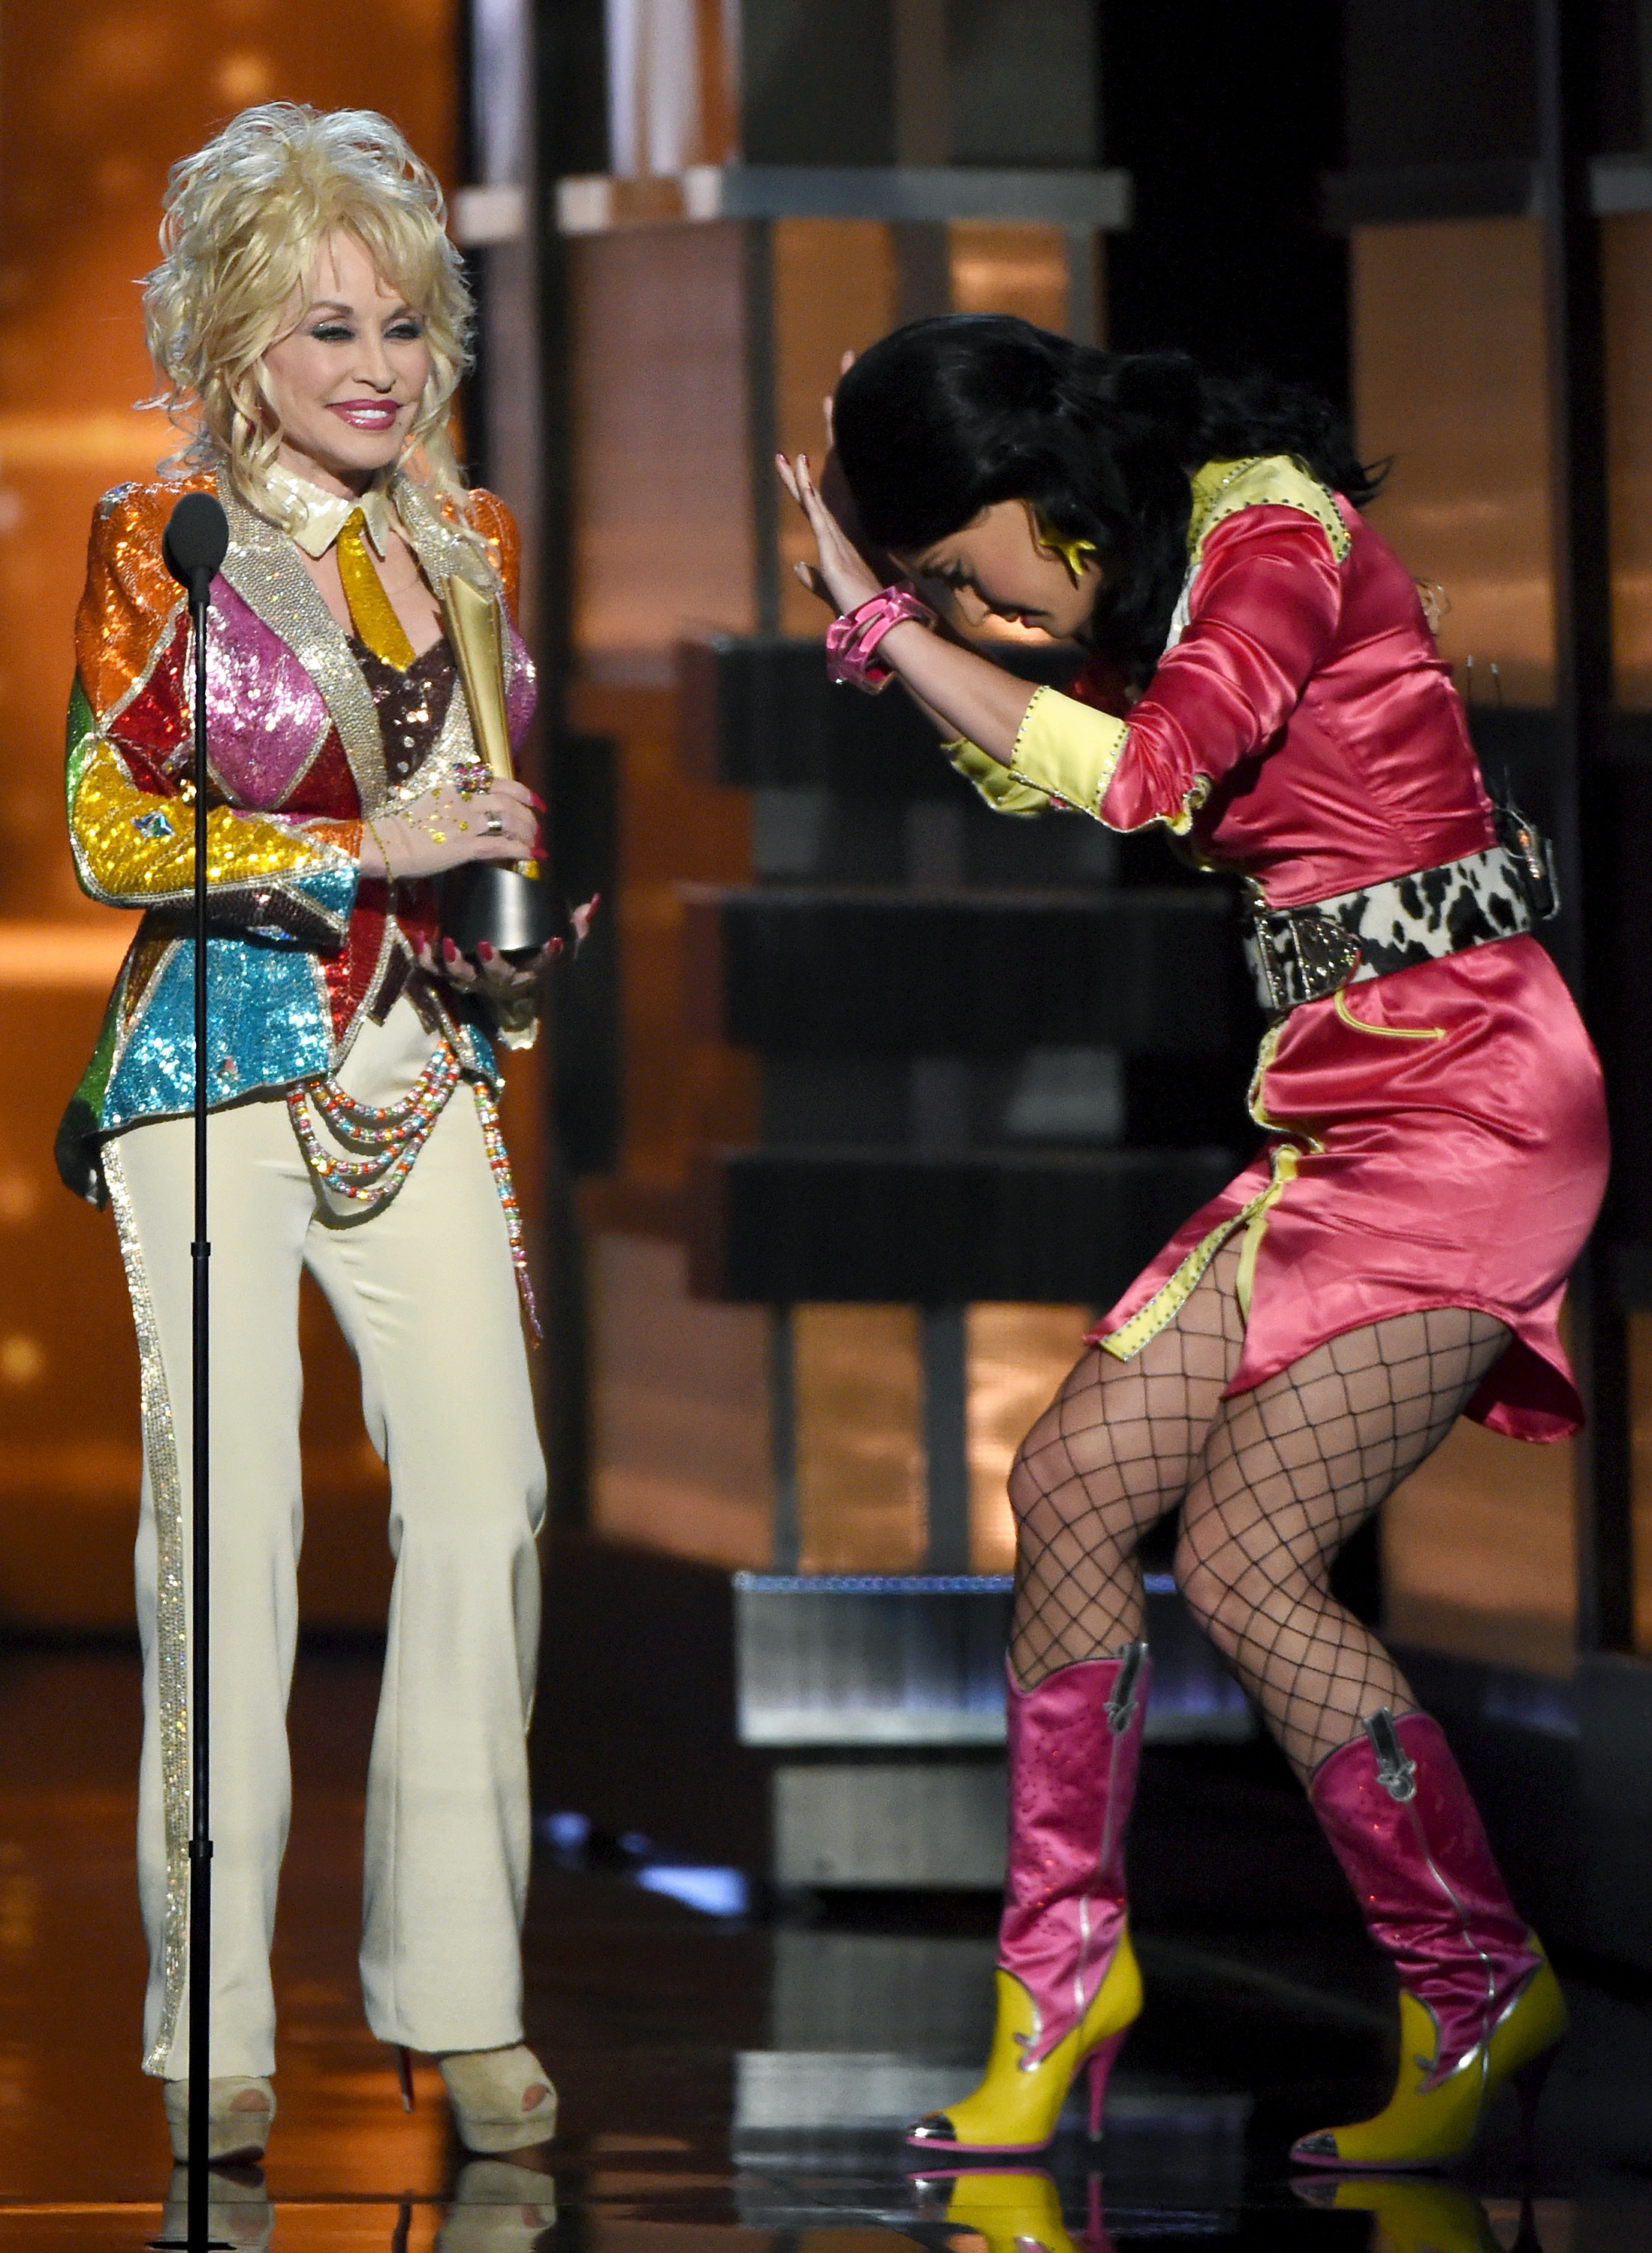 Honoree-Dolly-Parton-accepts-the-Tex-Ritter-Award-from-recording-artist-Katy-Perry-during-the-51st-Academy-of-Country-Music-Awards-at-MGM-Grand-Garden-Arena-on-April-3-2016-in-Las-Vegas